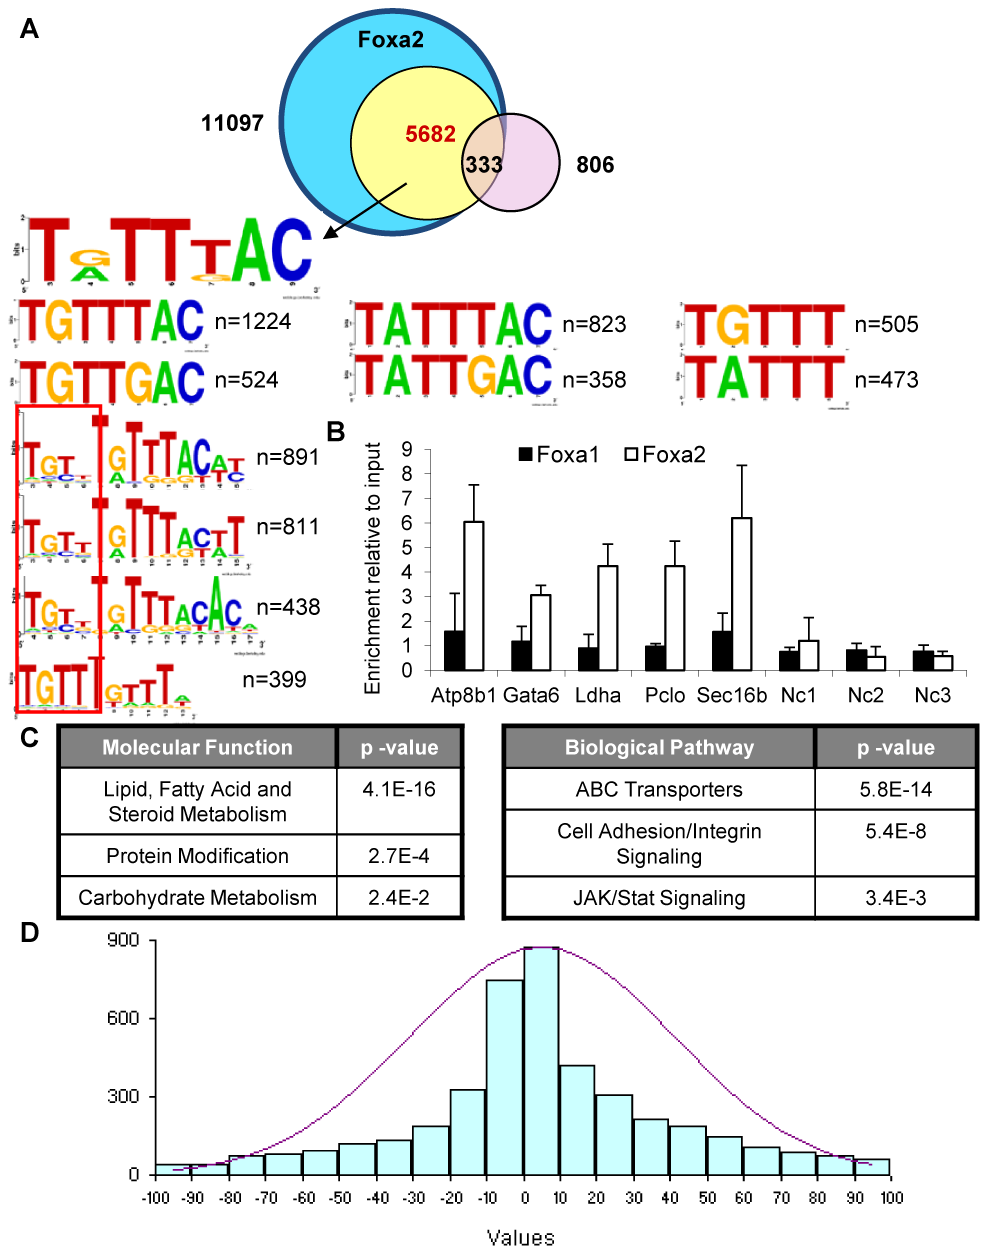 Foxa2-Specific Targets Contain a Medium-Strength <i>Forkhead</i> Consensus and Control Genes in Steroid and Lipid Metabolism.